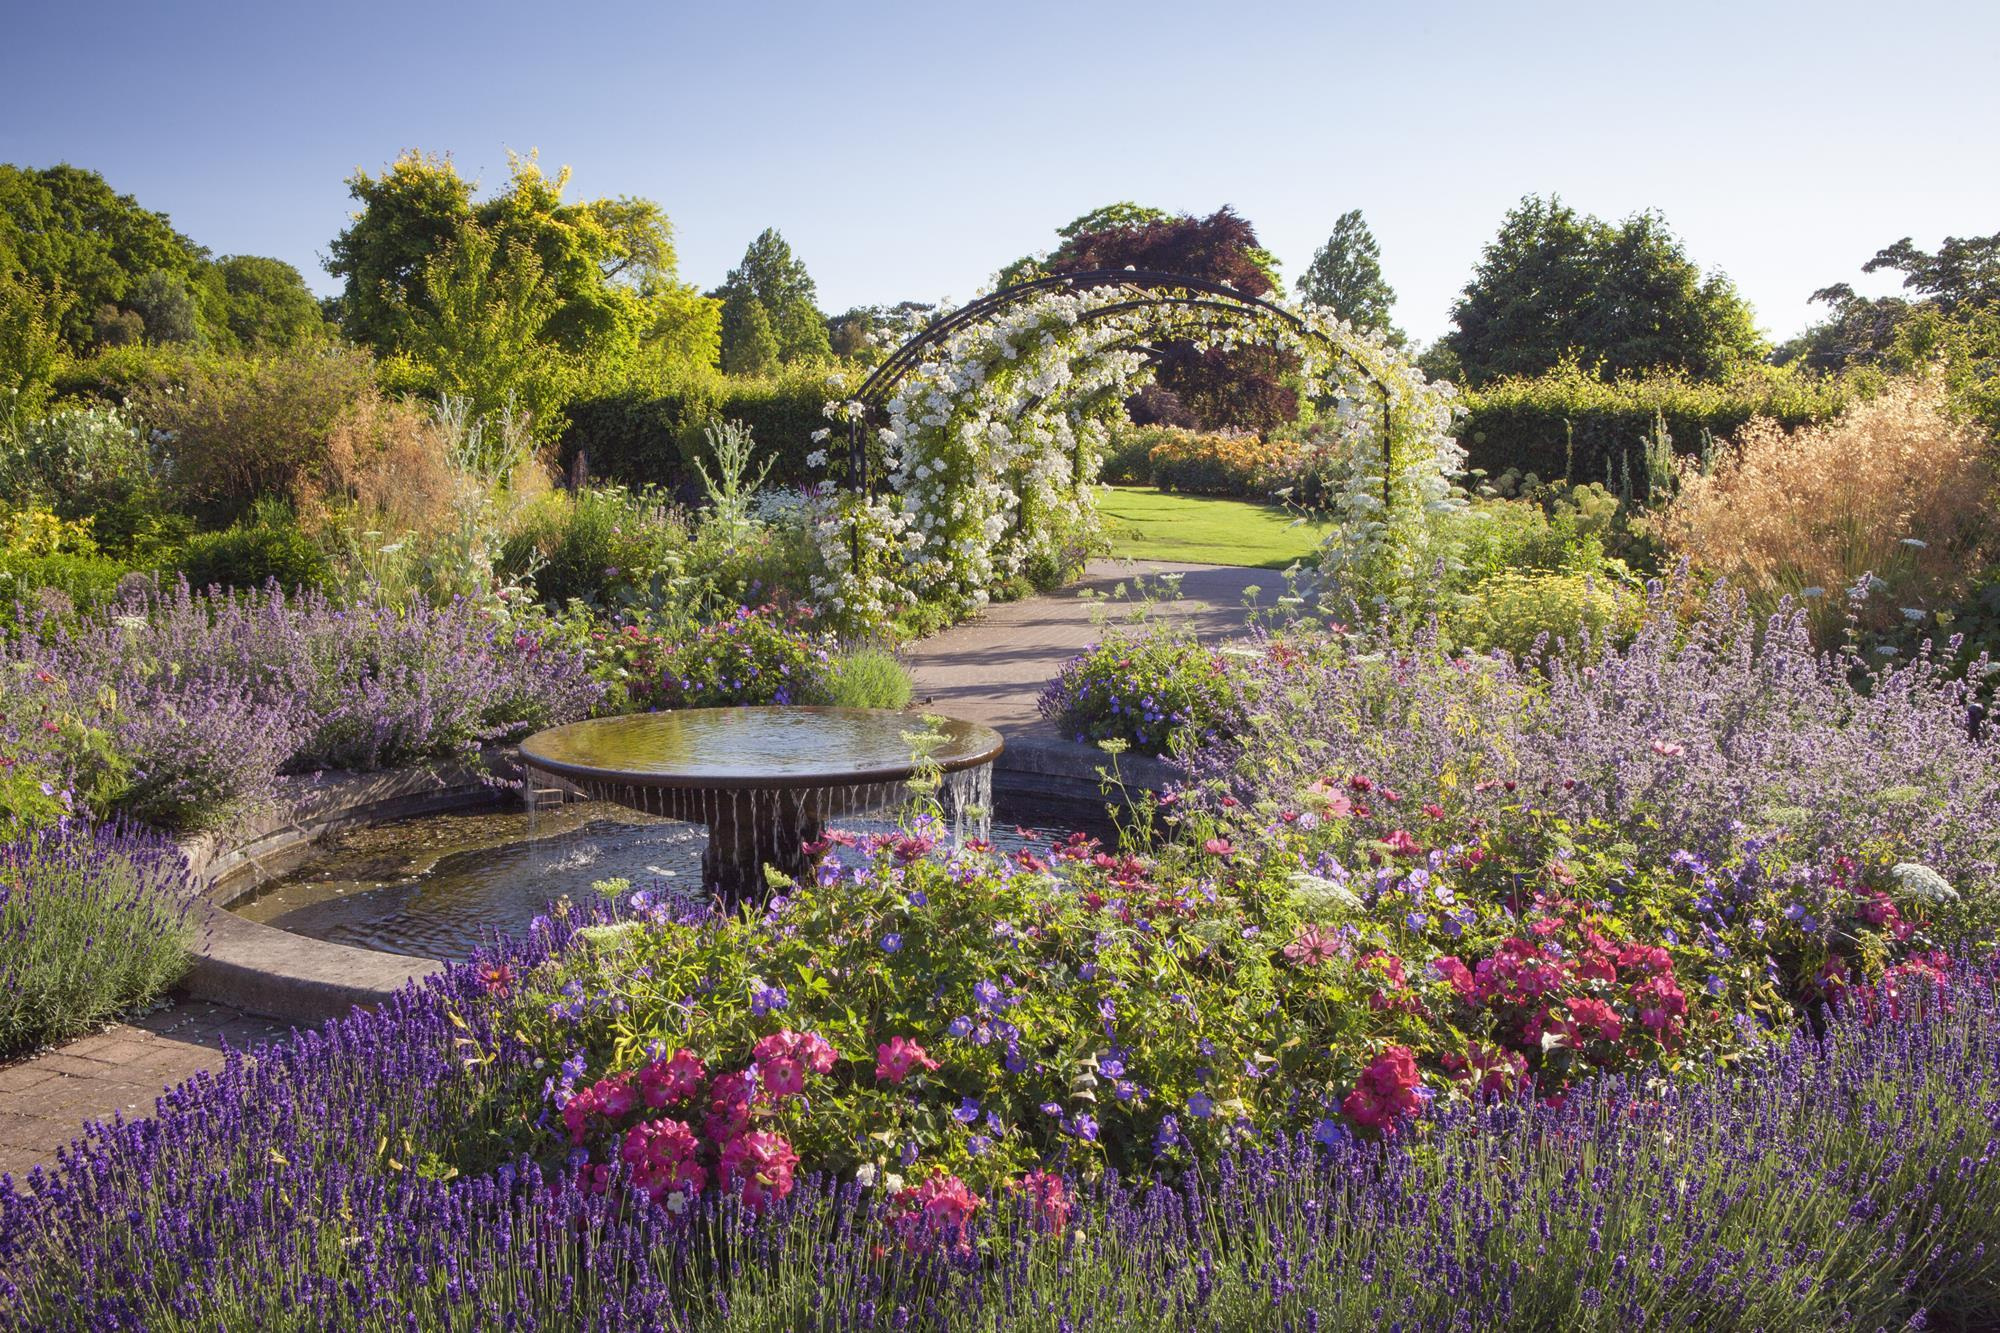 Chelsea Flower Show 2020.Rhs Flower Show 2020 Group Tickets Now On Sale News